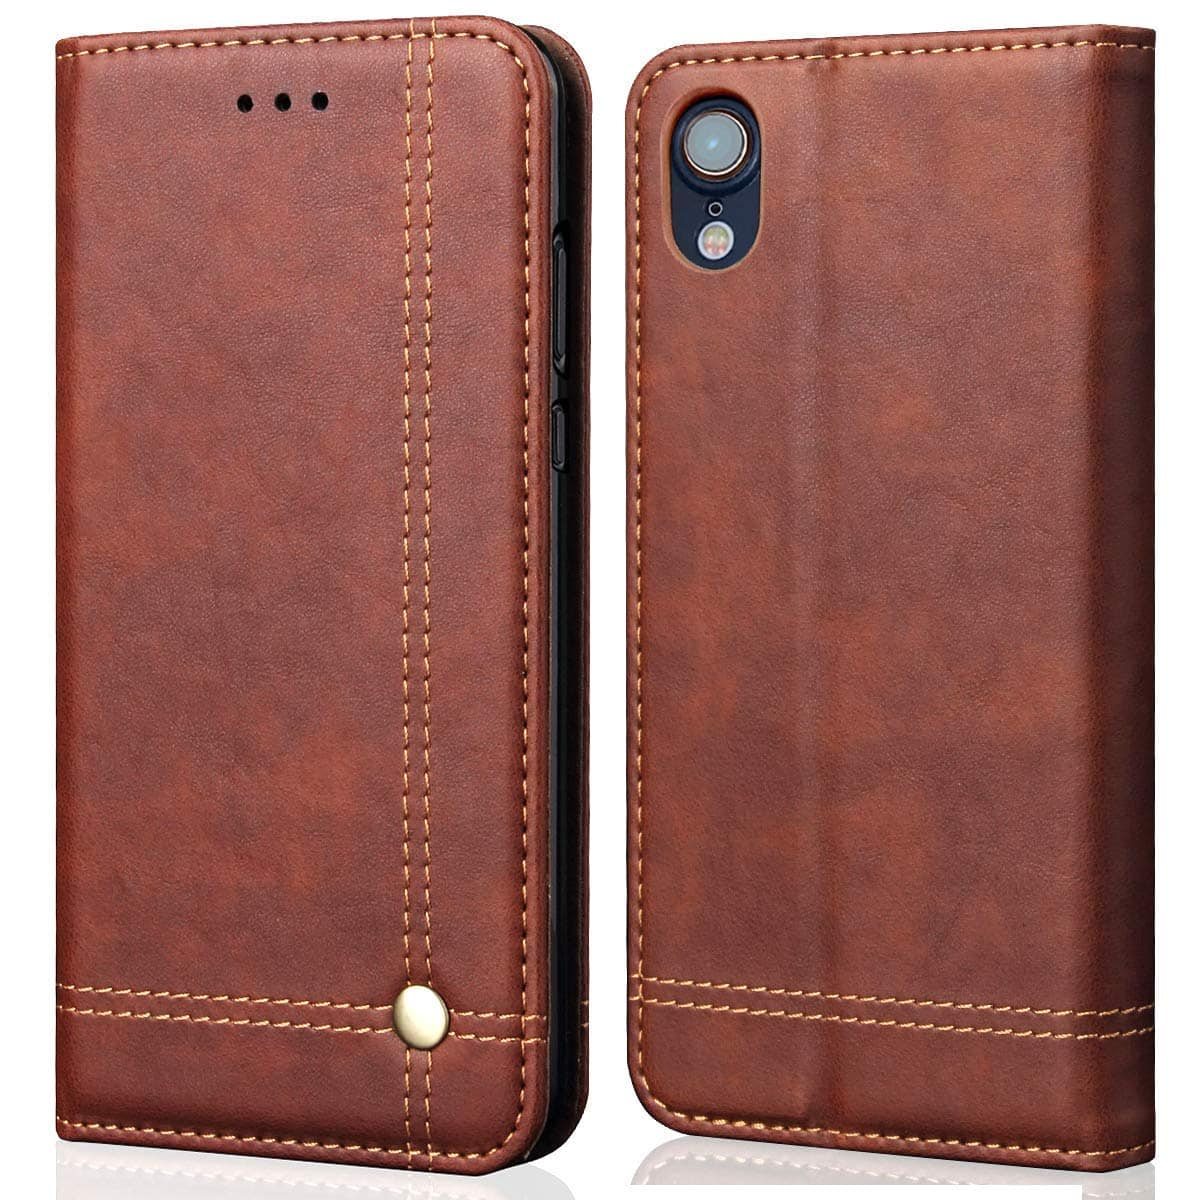 new product be925 eddea iPhone XR Ultra thin Wallet Case @ Amazon ~70% off AC w/ Free Prime ...